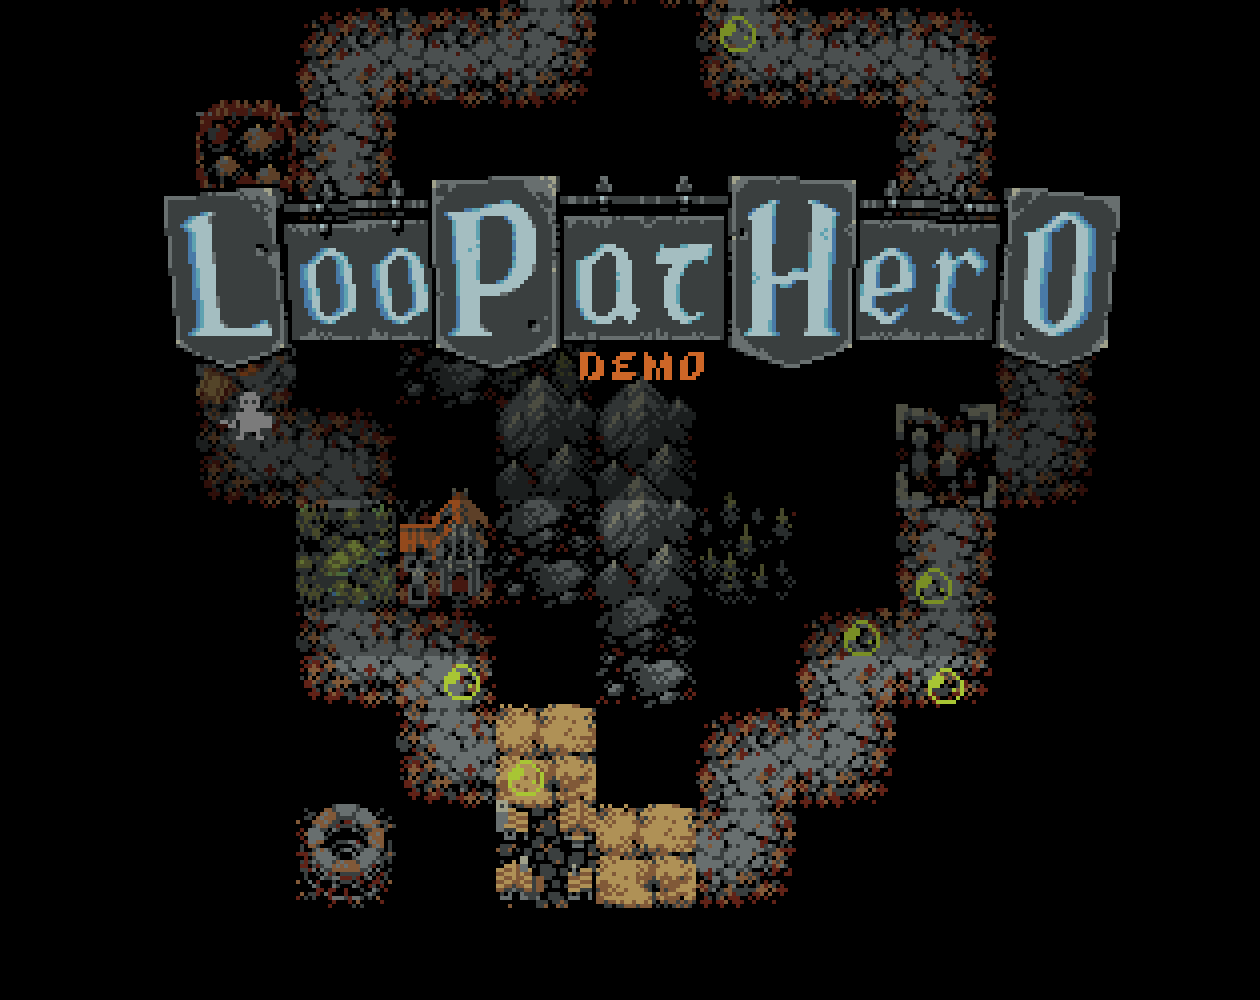 The text logo for Loop Hero's demo, LooPatHero, and an early look at the map.